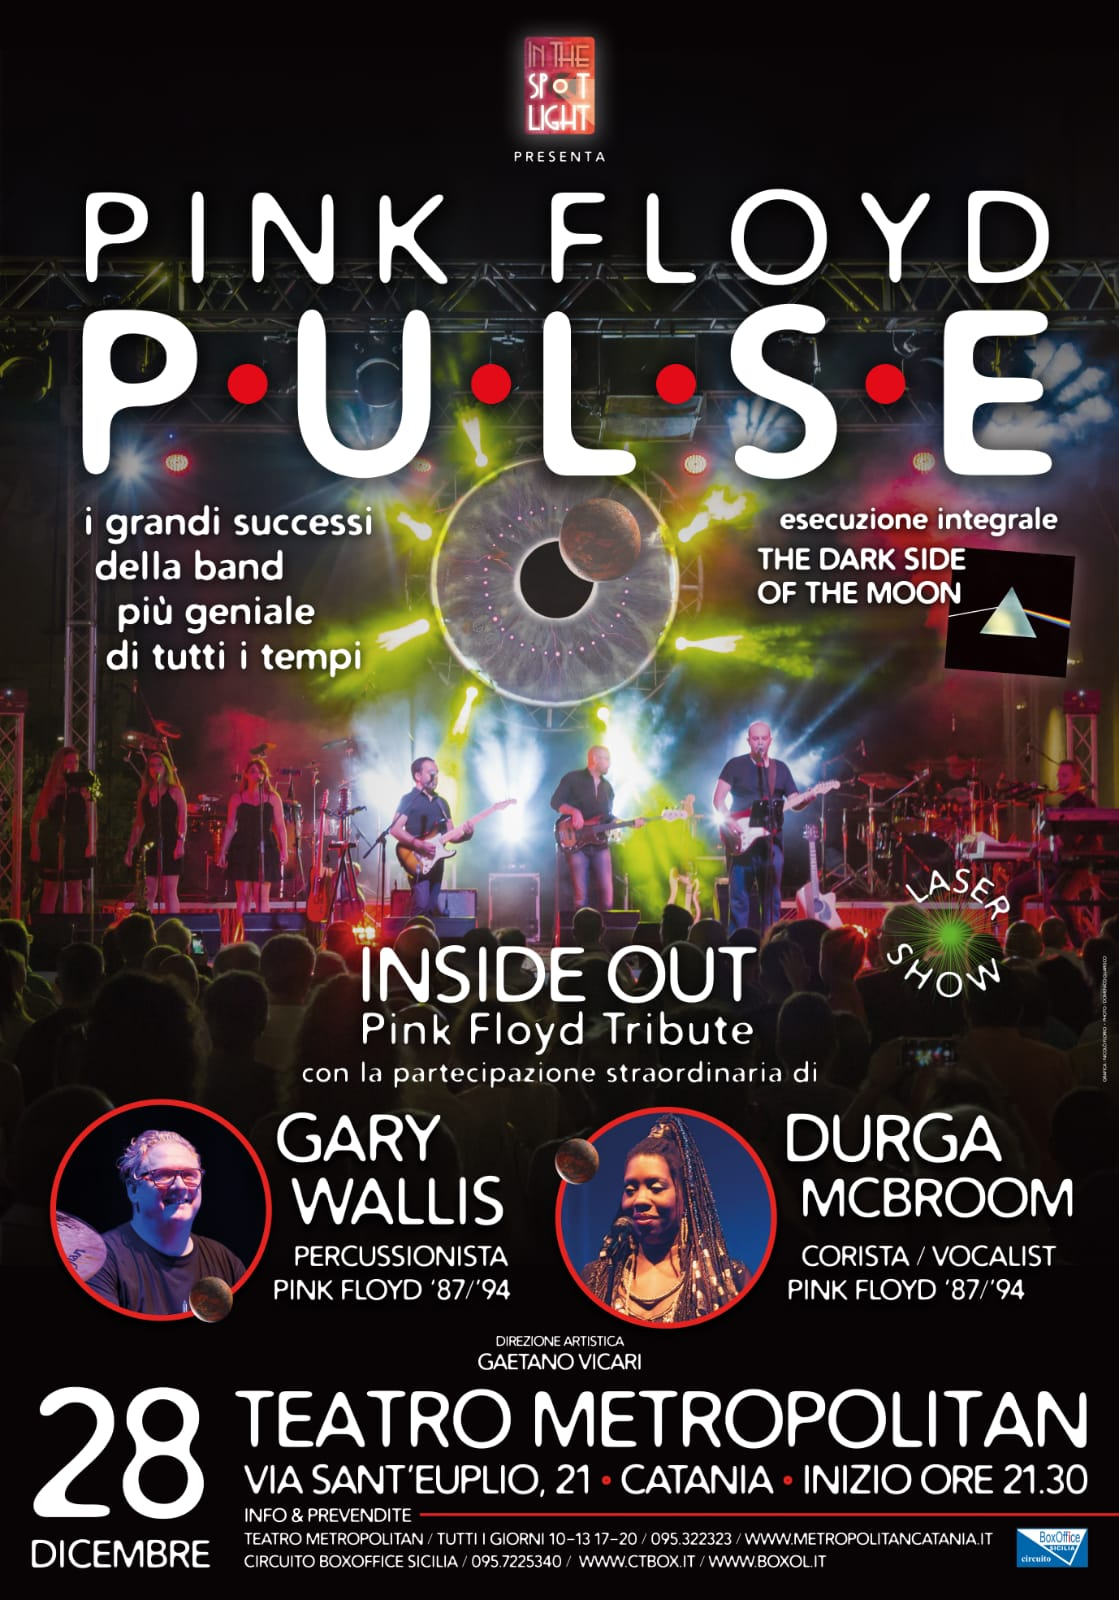 INSIDE OUT - PINK FLOYD TRIBUTE